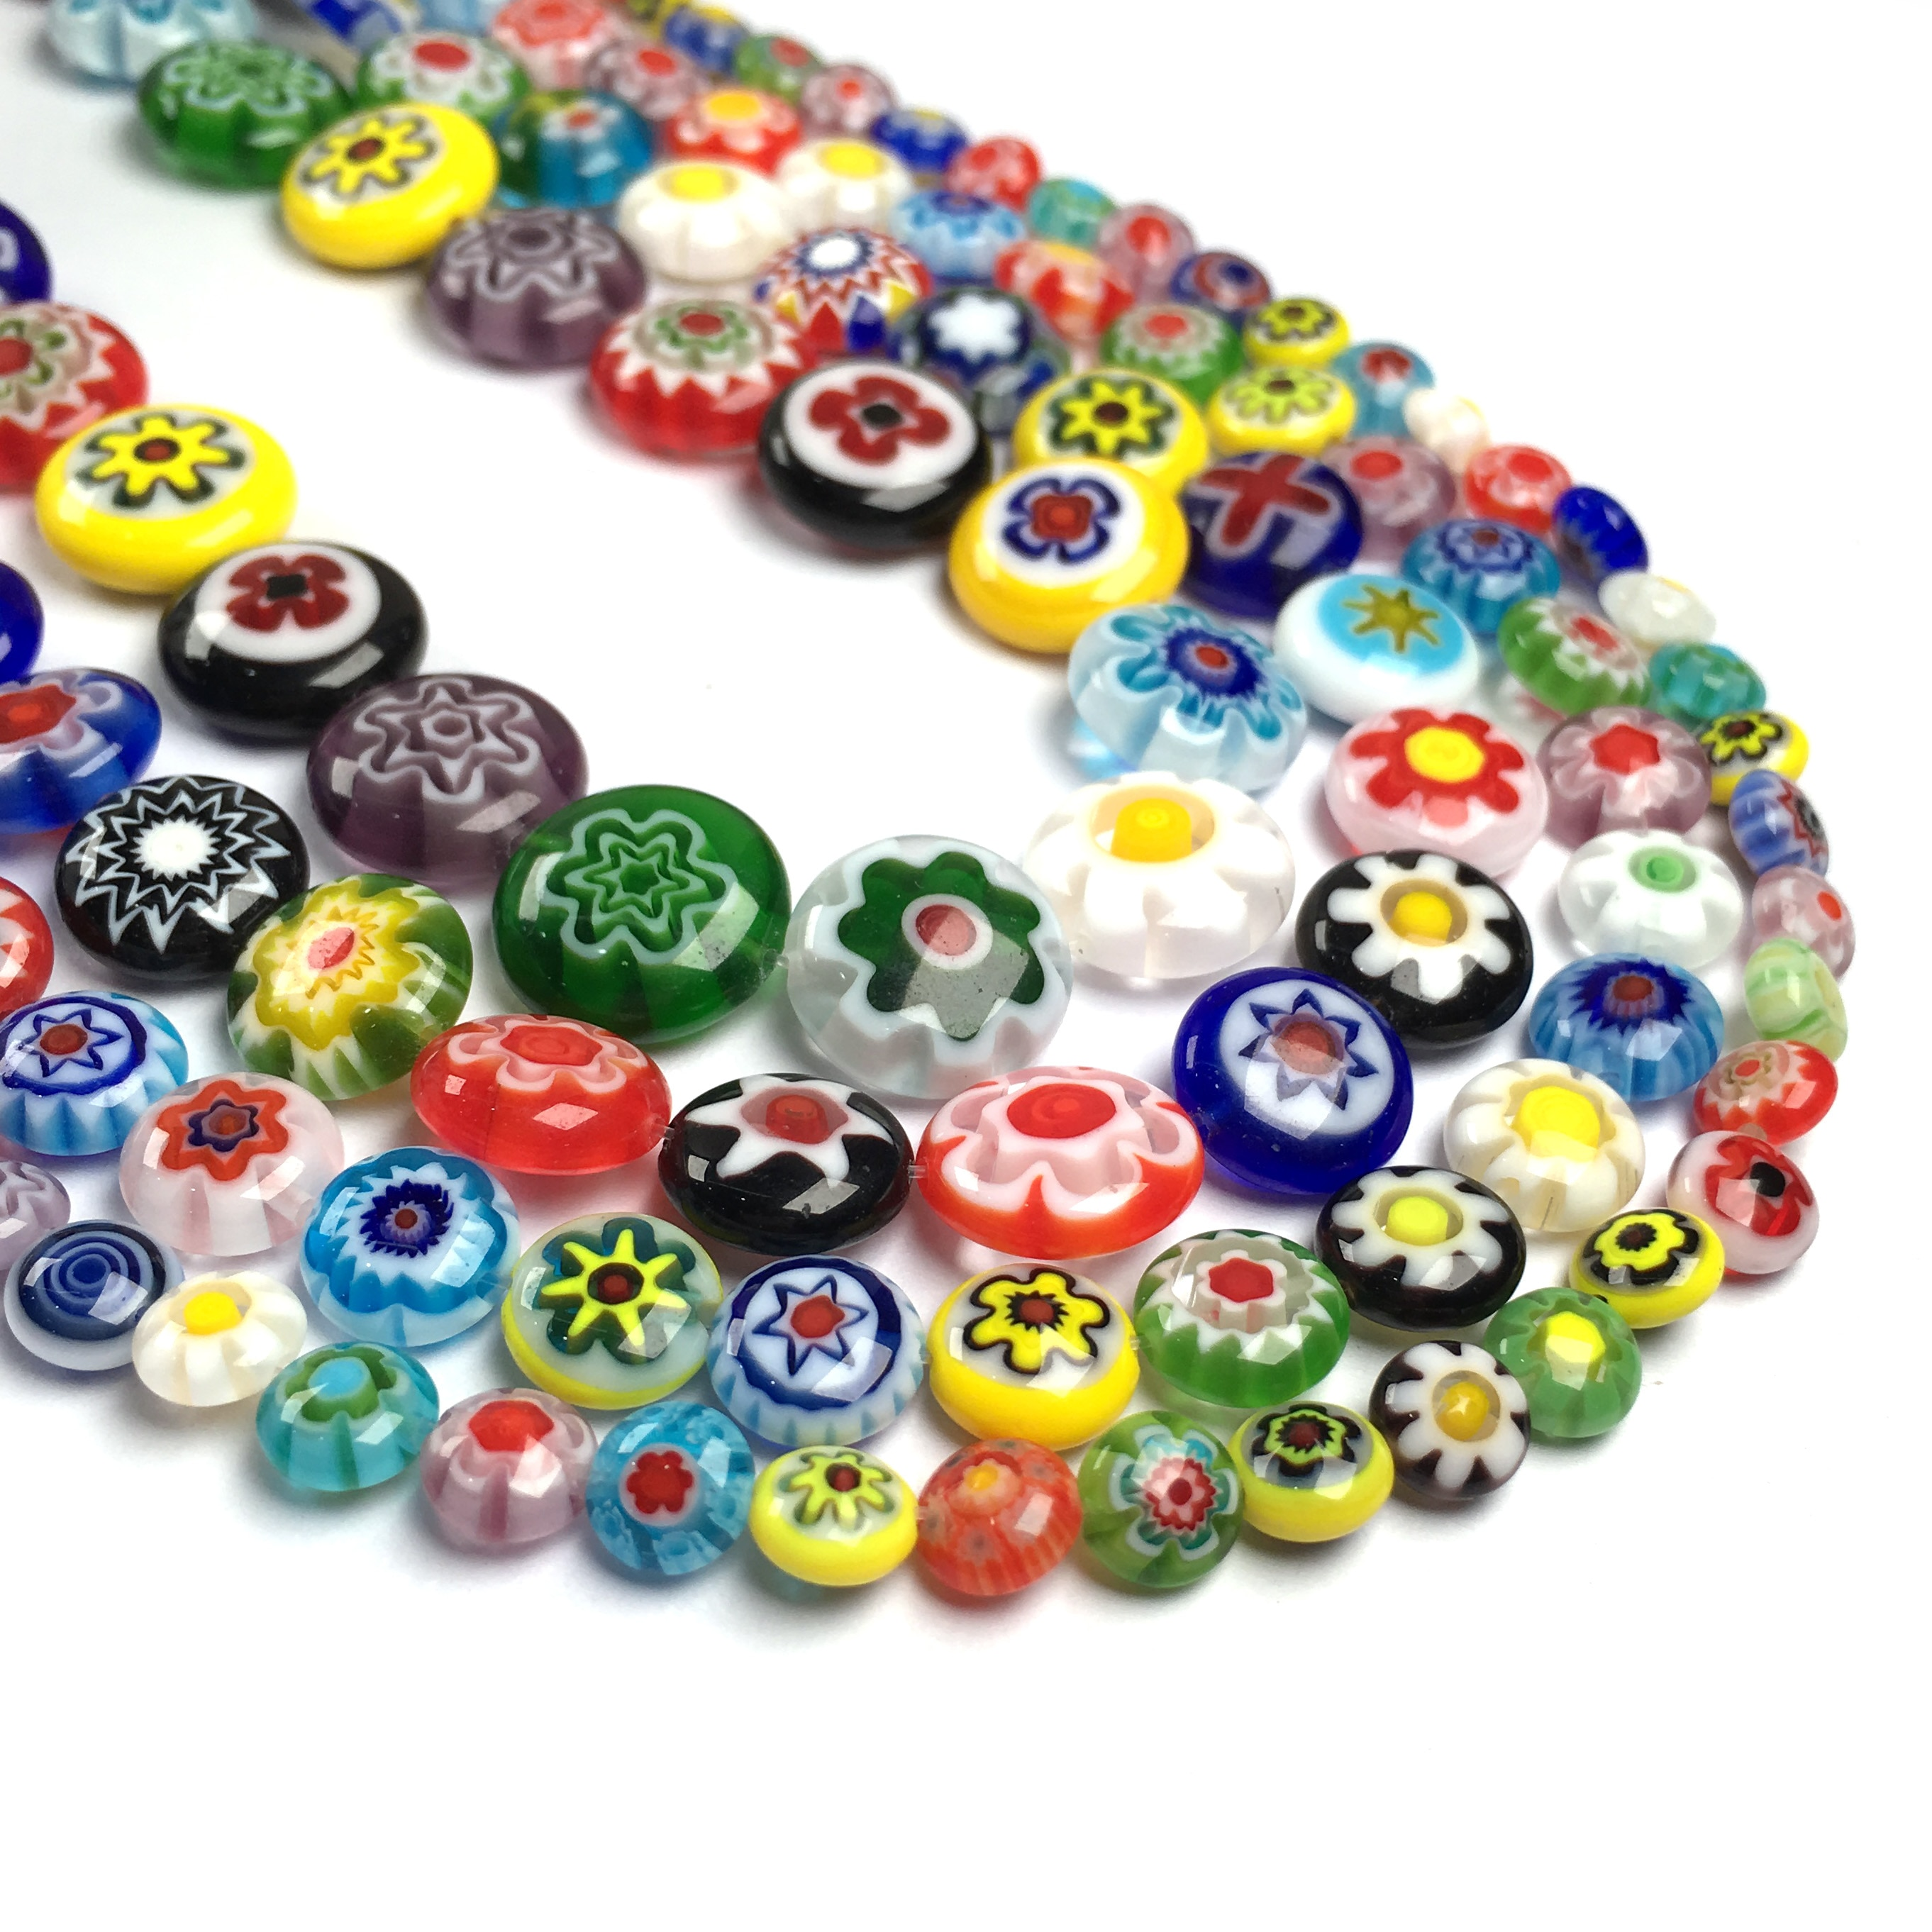 Fashion Mixed Oblate Round Millefiori Flower Lampwork Glass Beads For DIY Necklace Bracelet Jewelry Making Accessories Gift  - buy with discount